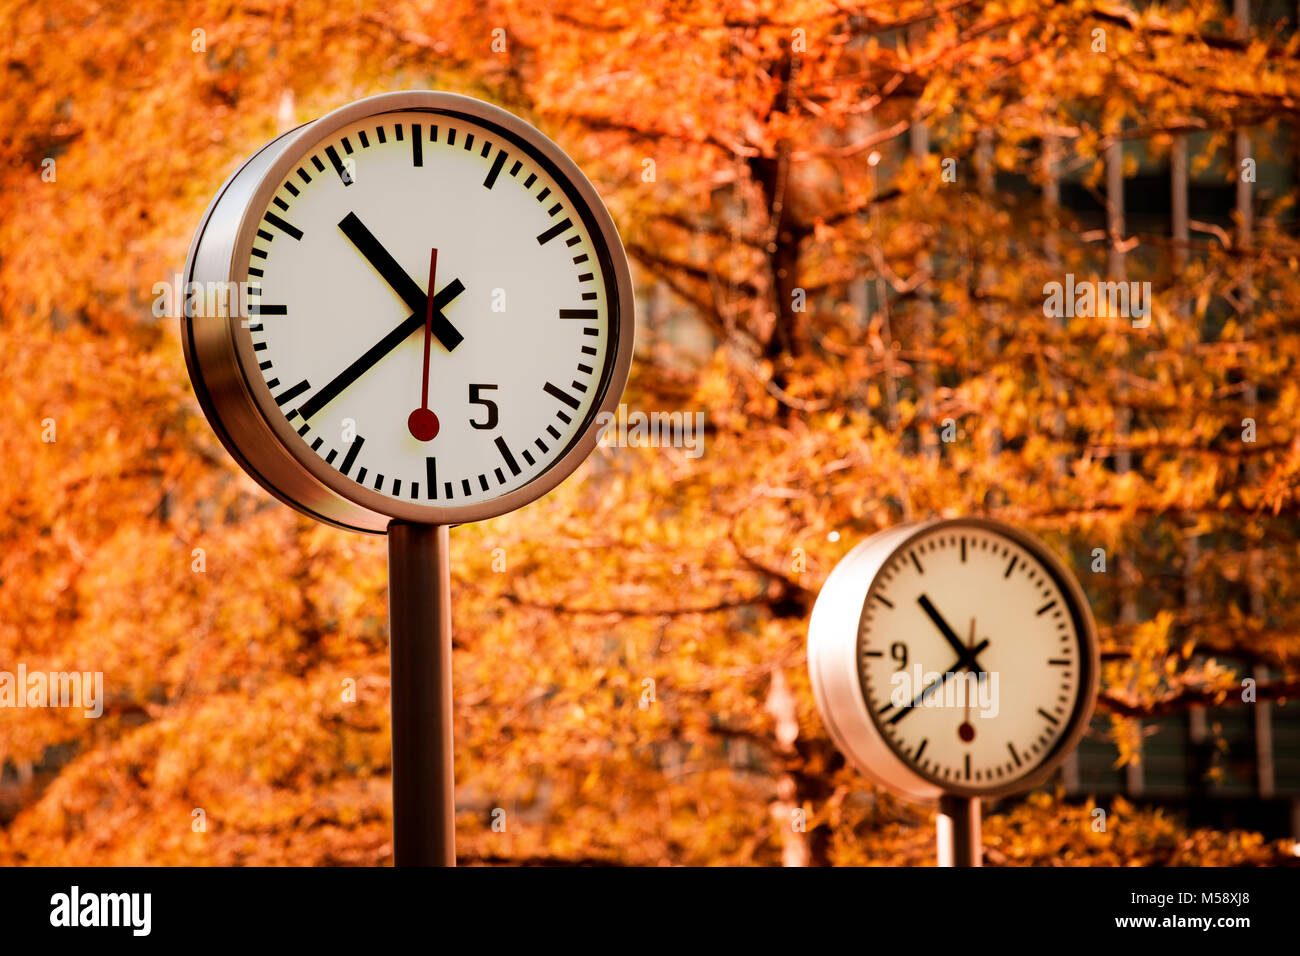 Clocks in Autumn at Canary Wharf - Stock Image